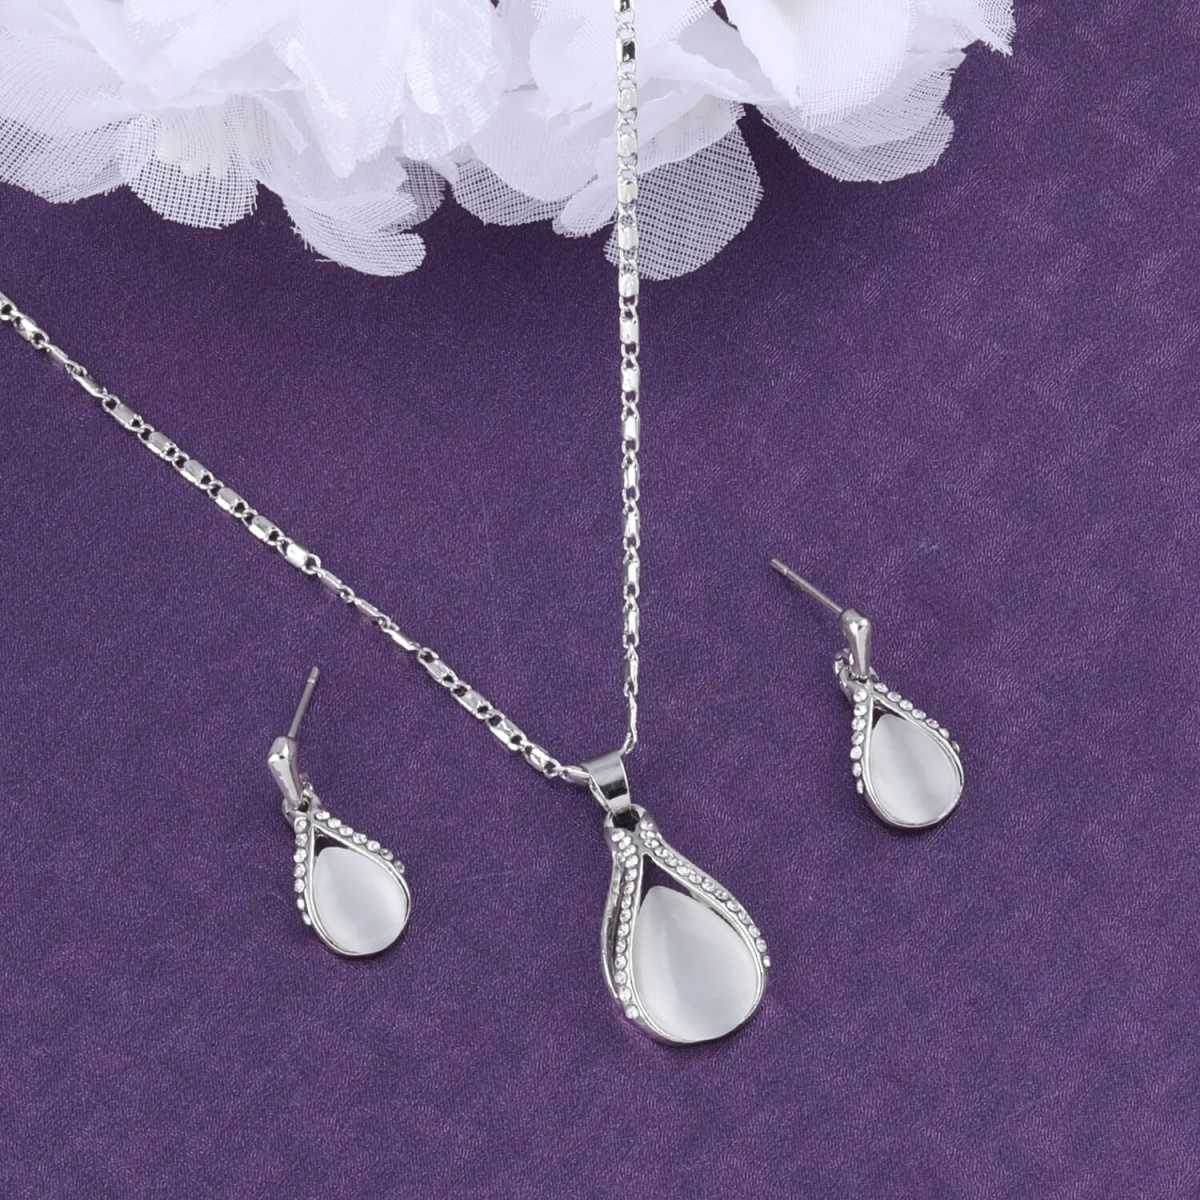 SILVER SHINE Delicate Silver Plated  Pendant Set For Women Girl